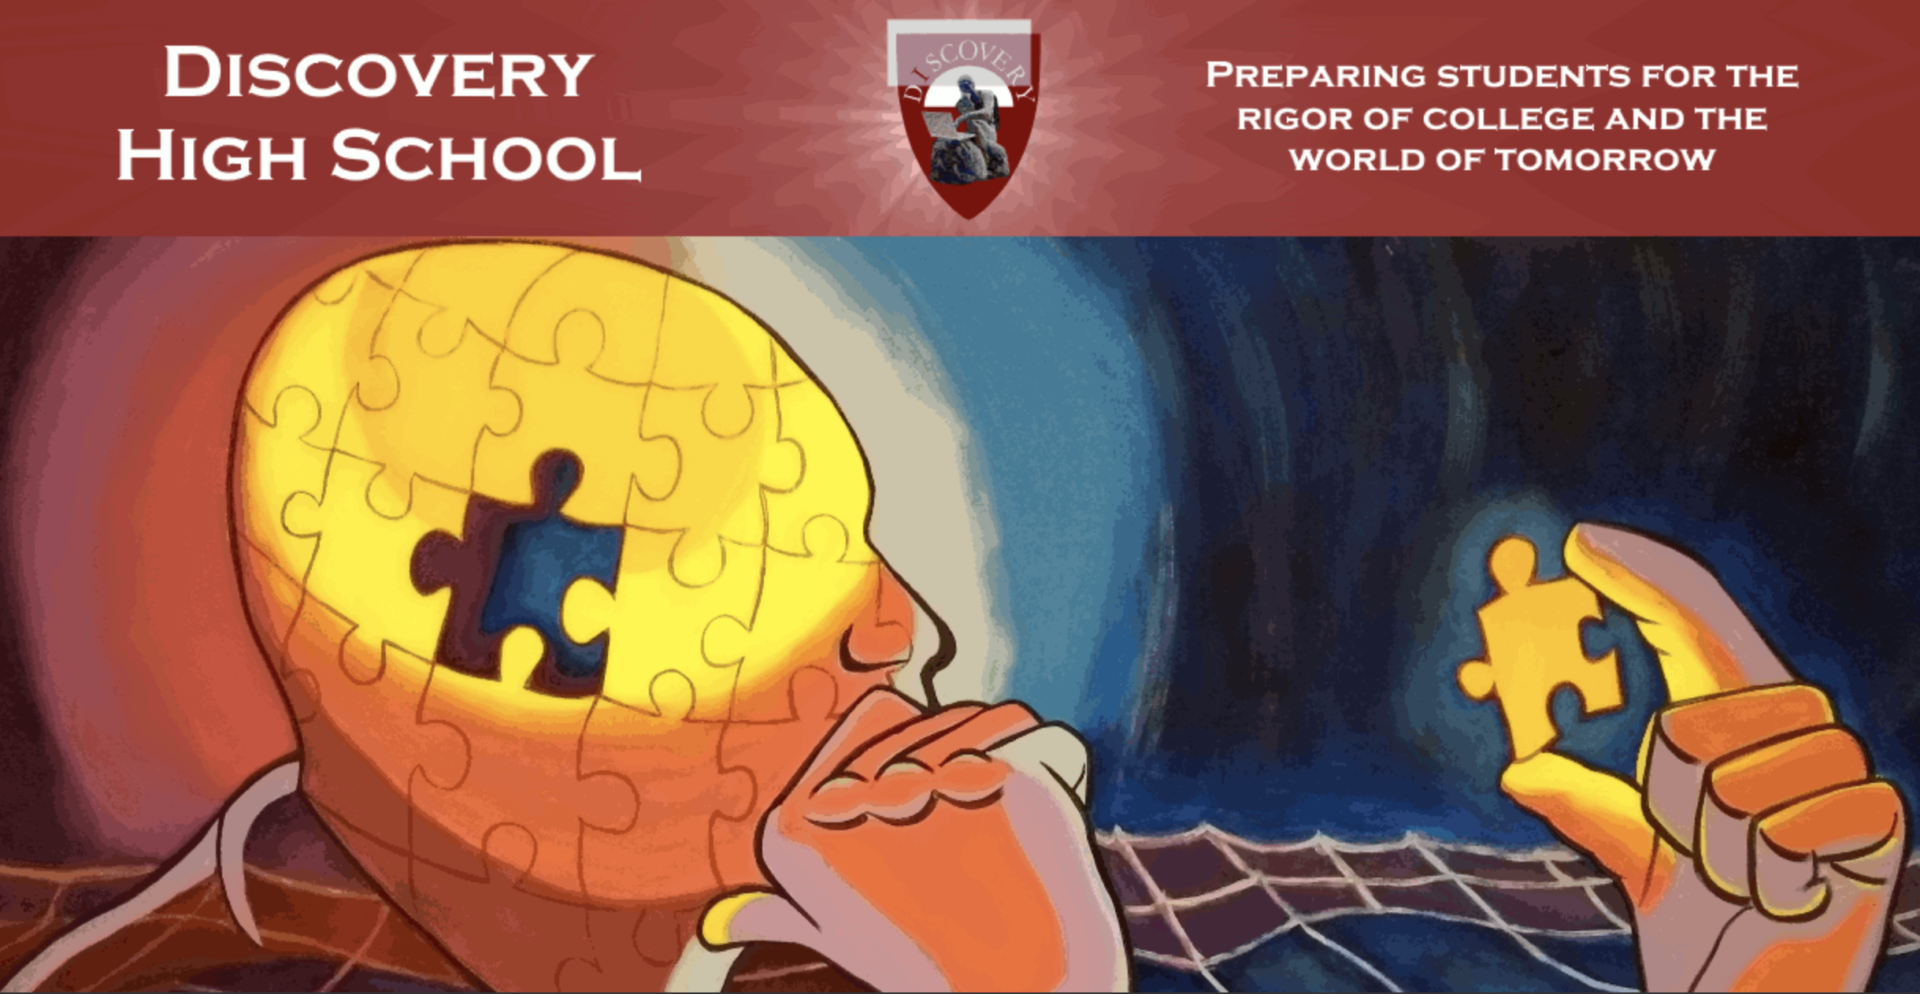 Discovery High School puzzle pieces